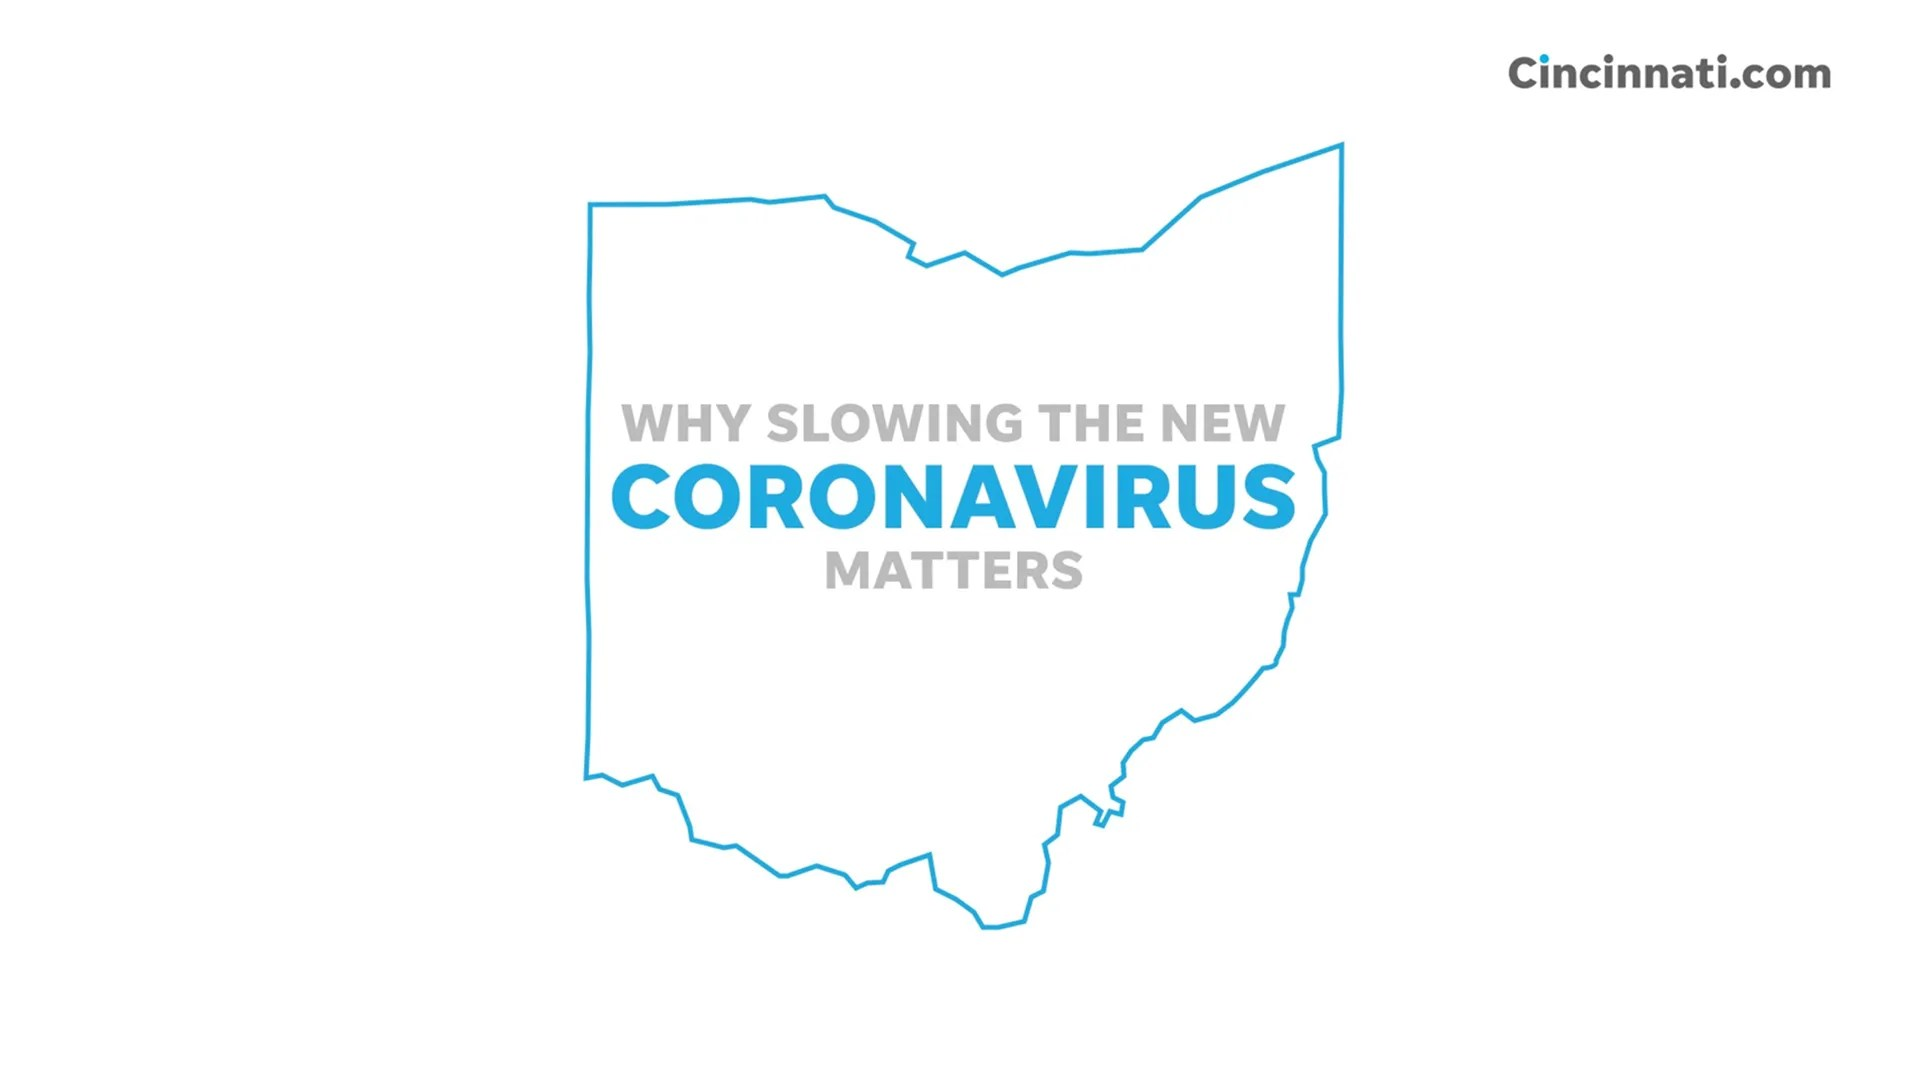 What counties in Ohio have coronavirus cases confirmed?